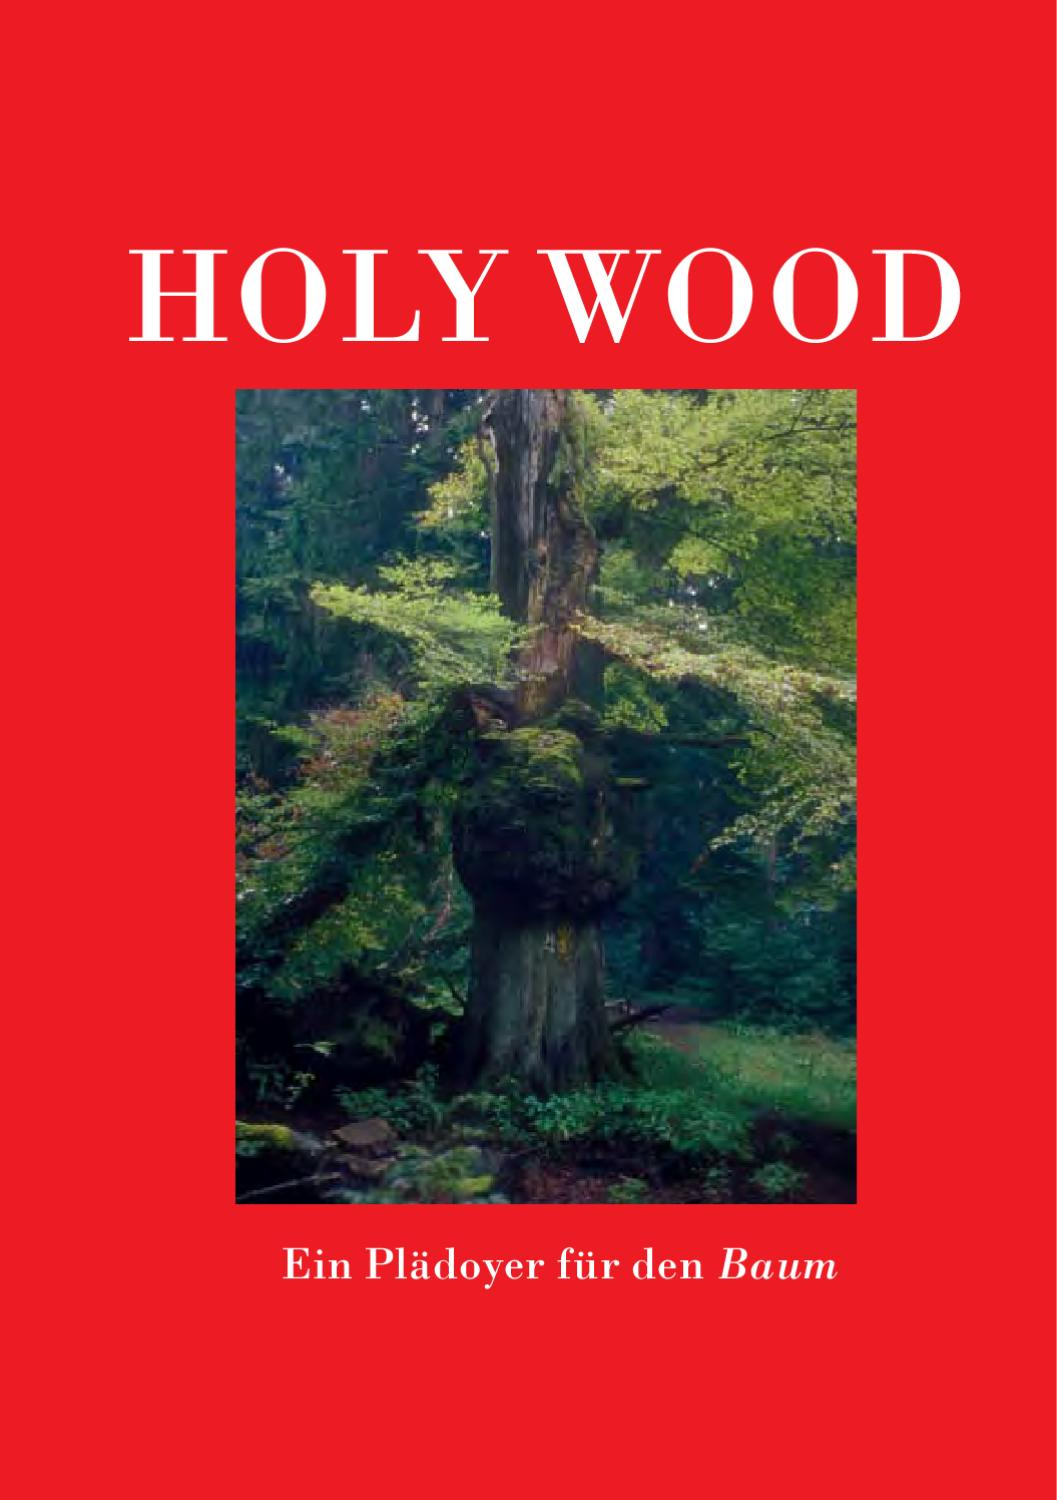 HOLY WOOD by Mindpirates - issuu